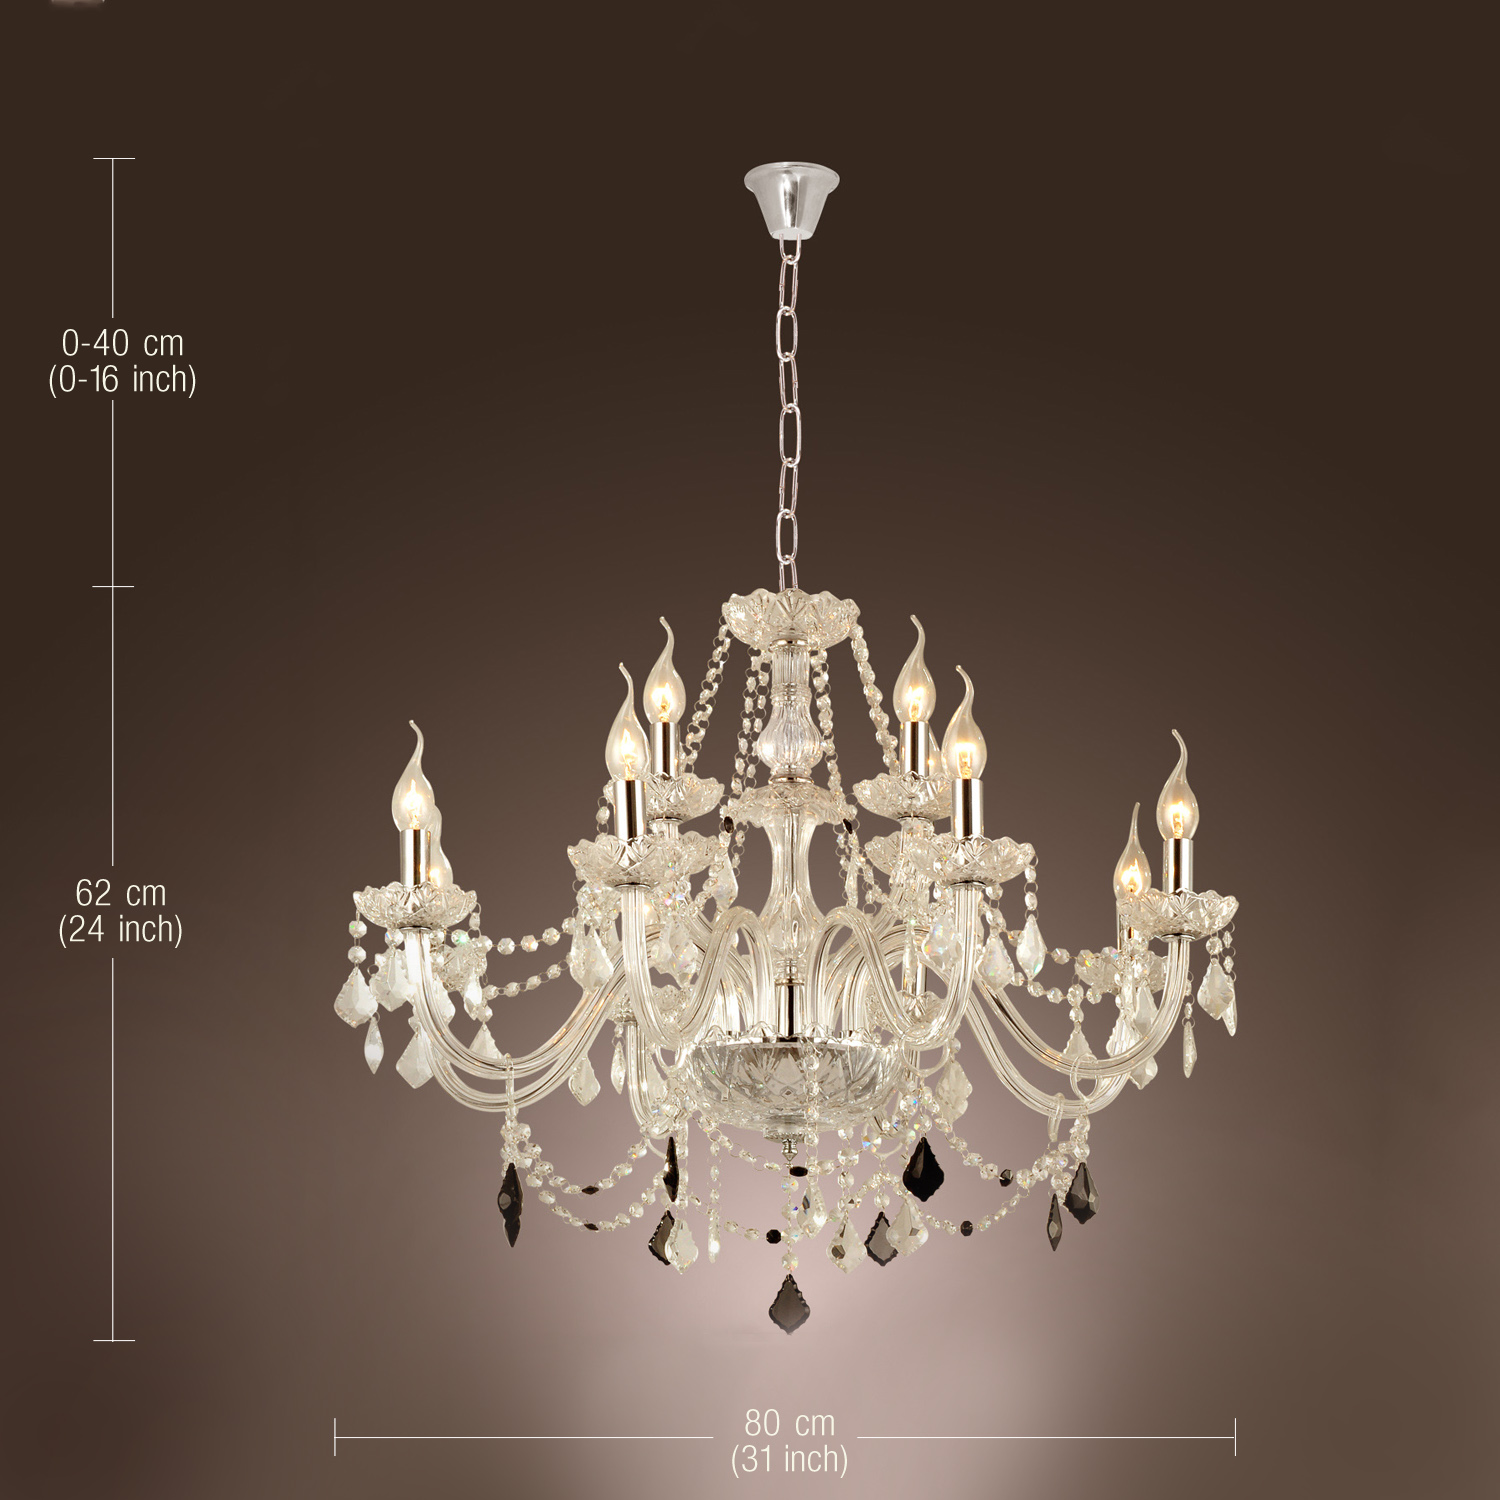 12 light venetian murano style crystal chandelier kitchen foyer dining room usa - Dining room crystal chandelier ...